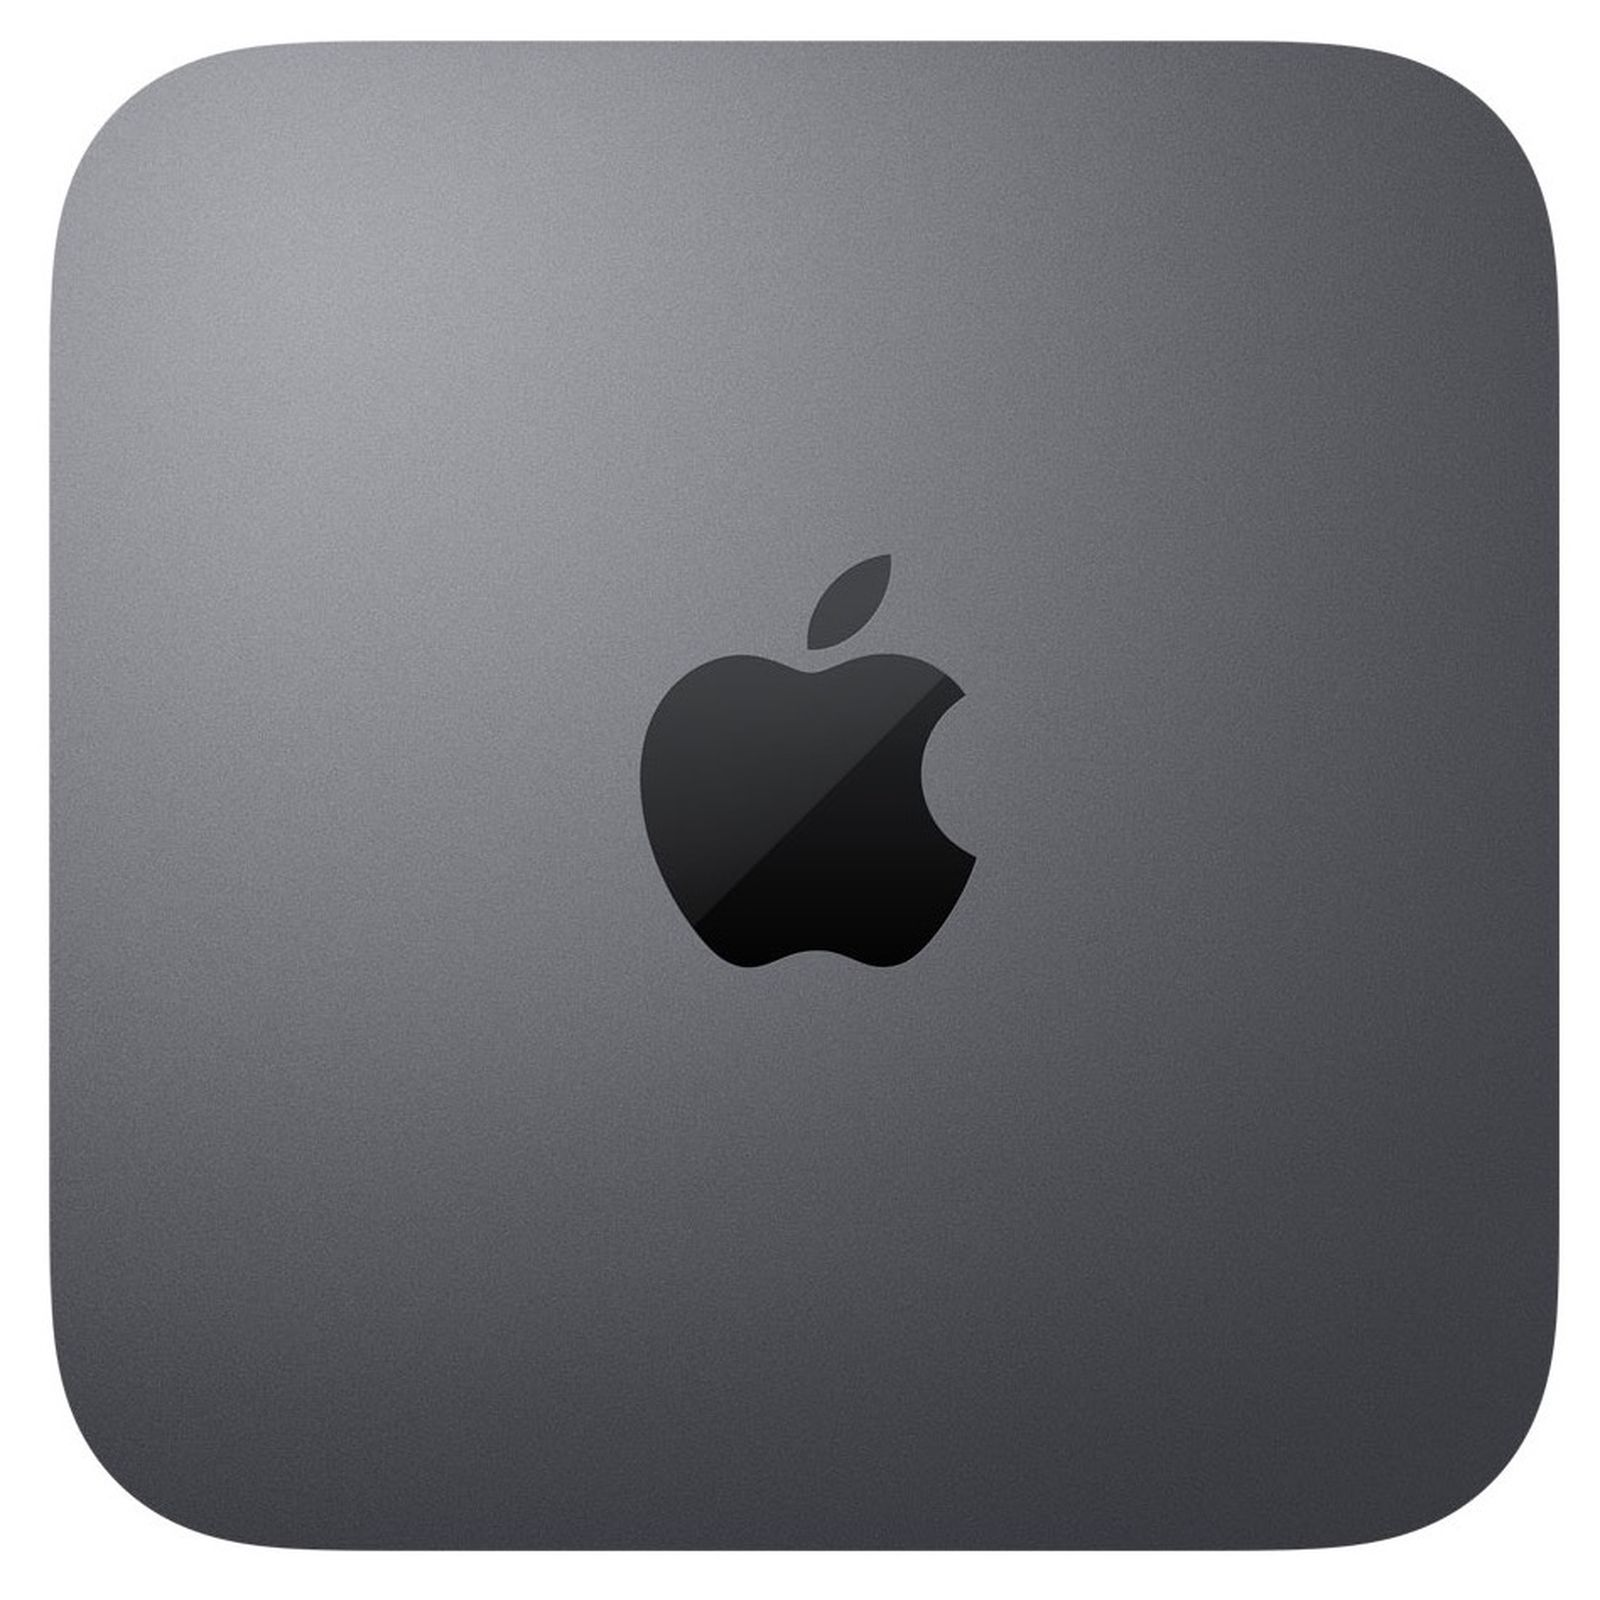 What is the best mac mini to buy